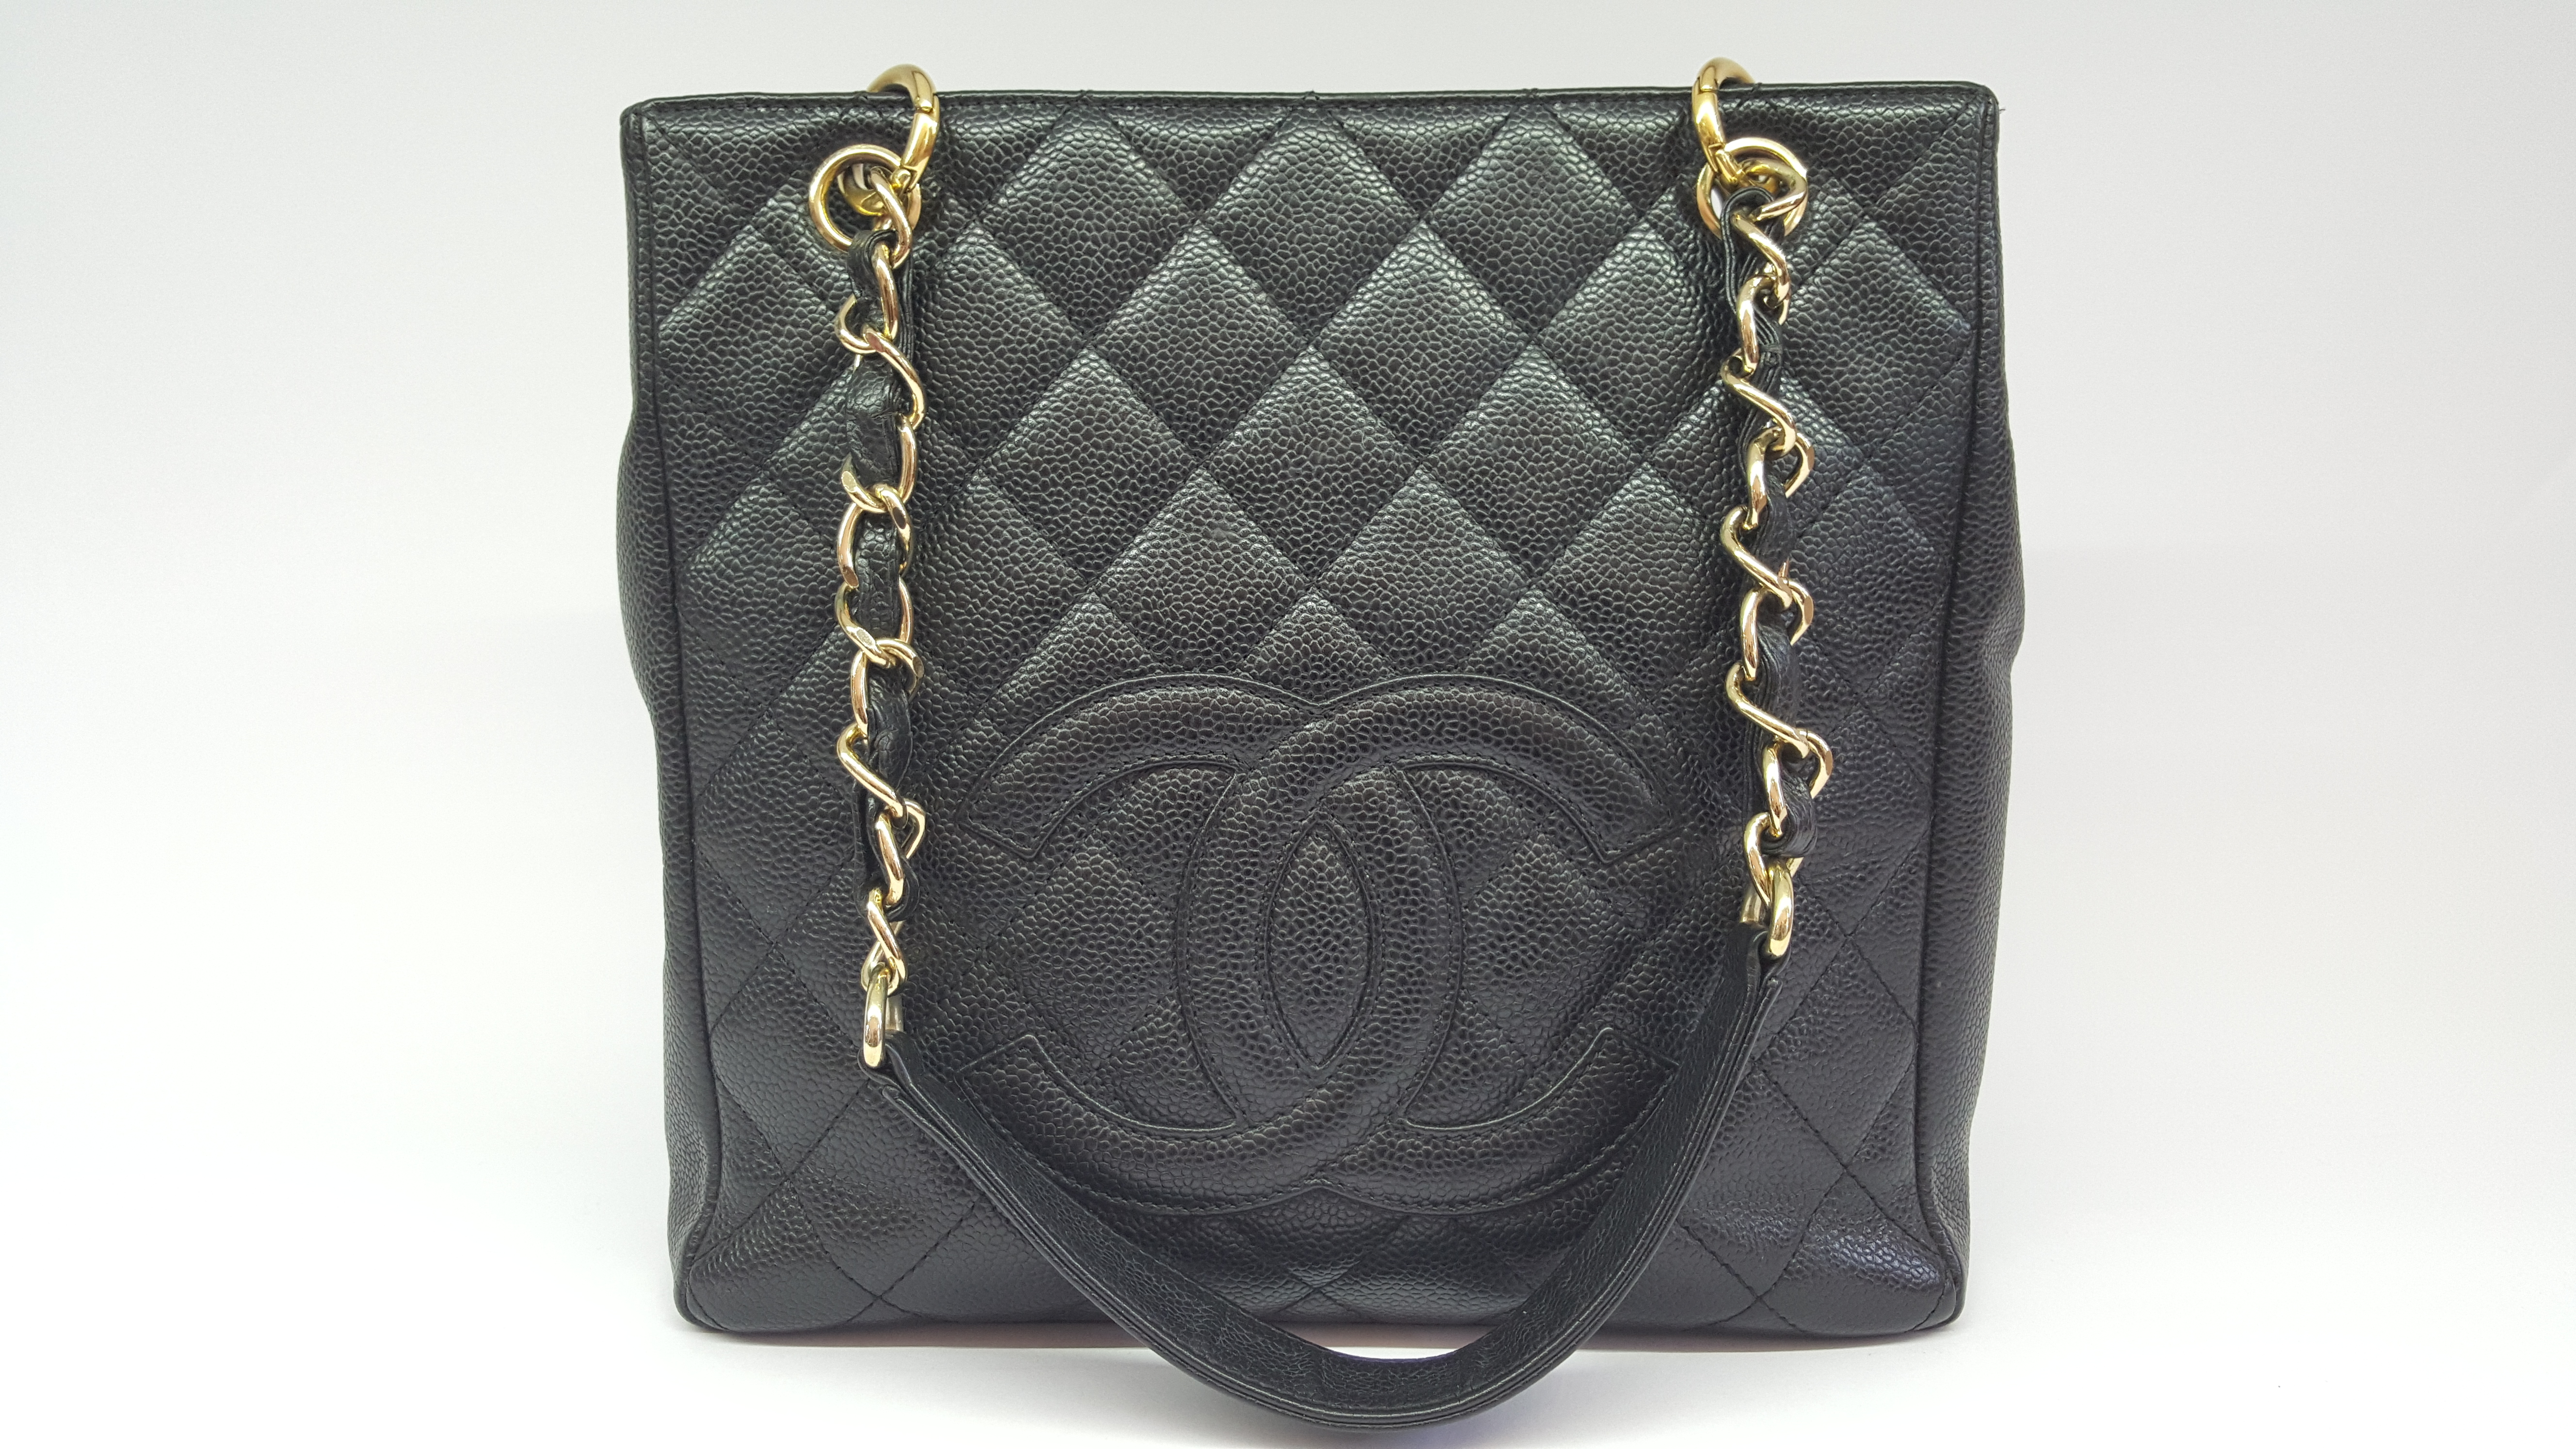 45f2024ce1d4ce Chanel PST black caviar leather - Vintage Shop in Mykonos